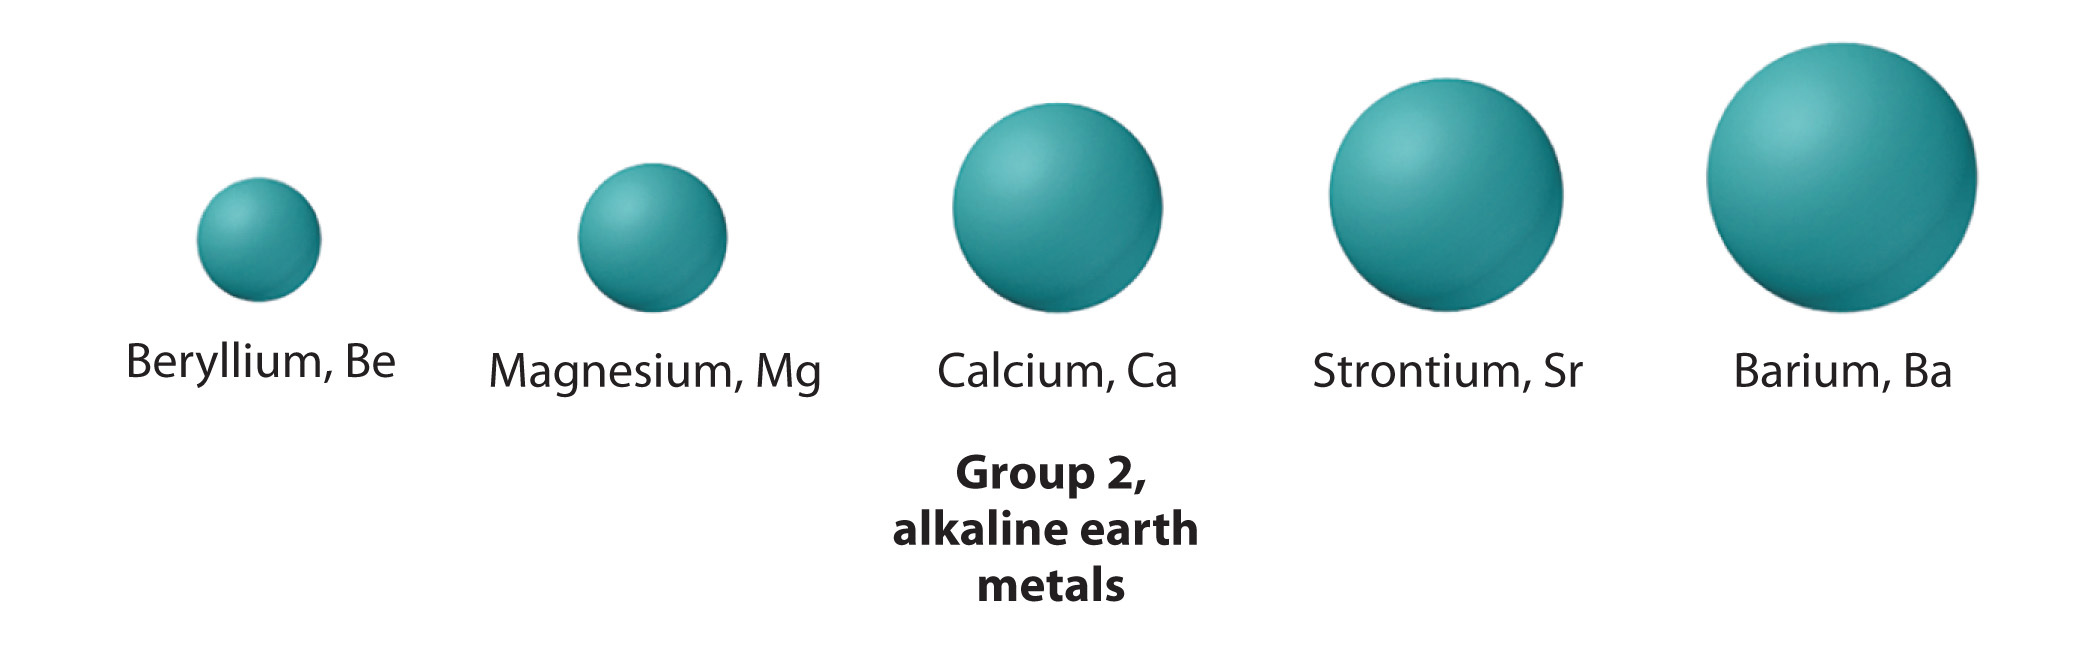 Musketzequ common physical properties alkaline earth metals common physical properties alkaline earth metals urtaz Images